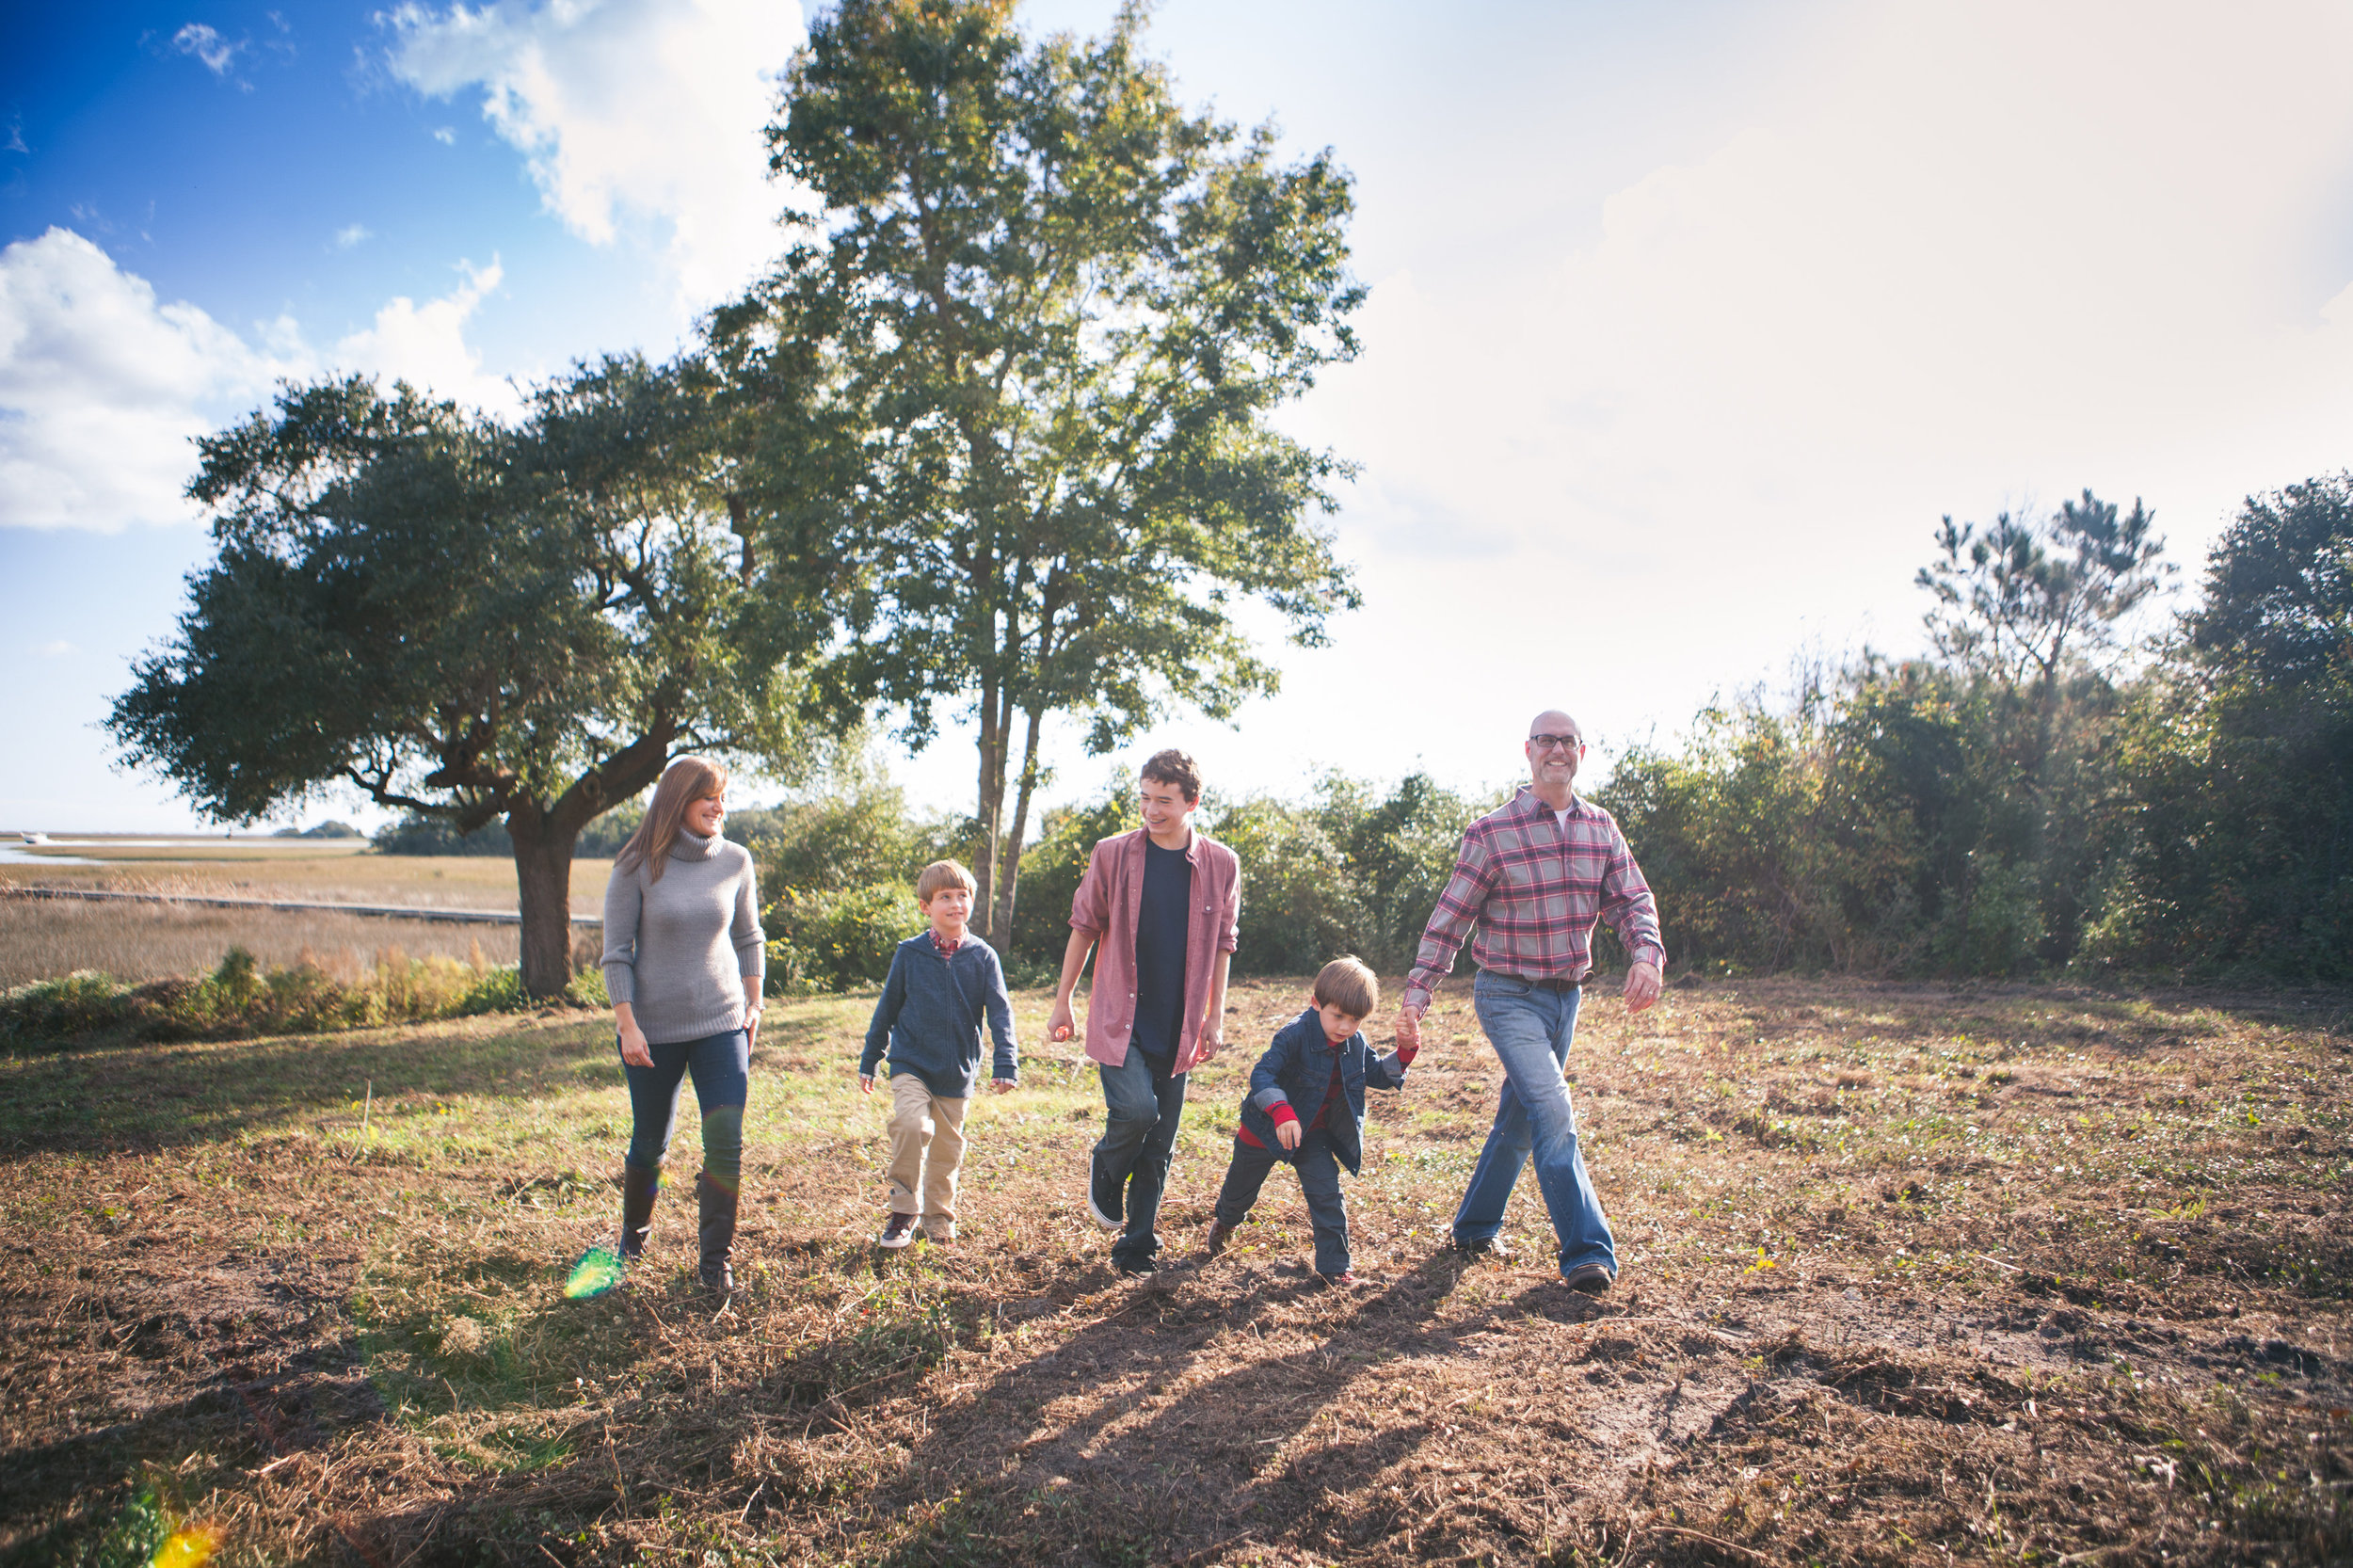 Woodfill Family-High Res for Print-0013.jpg